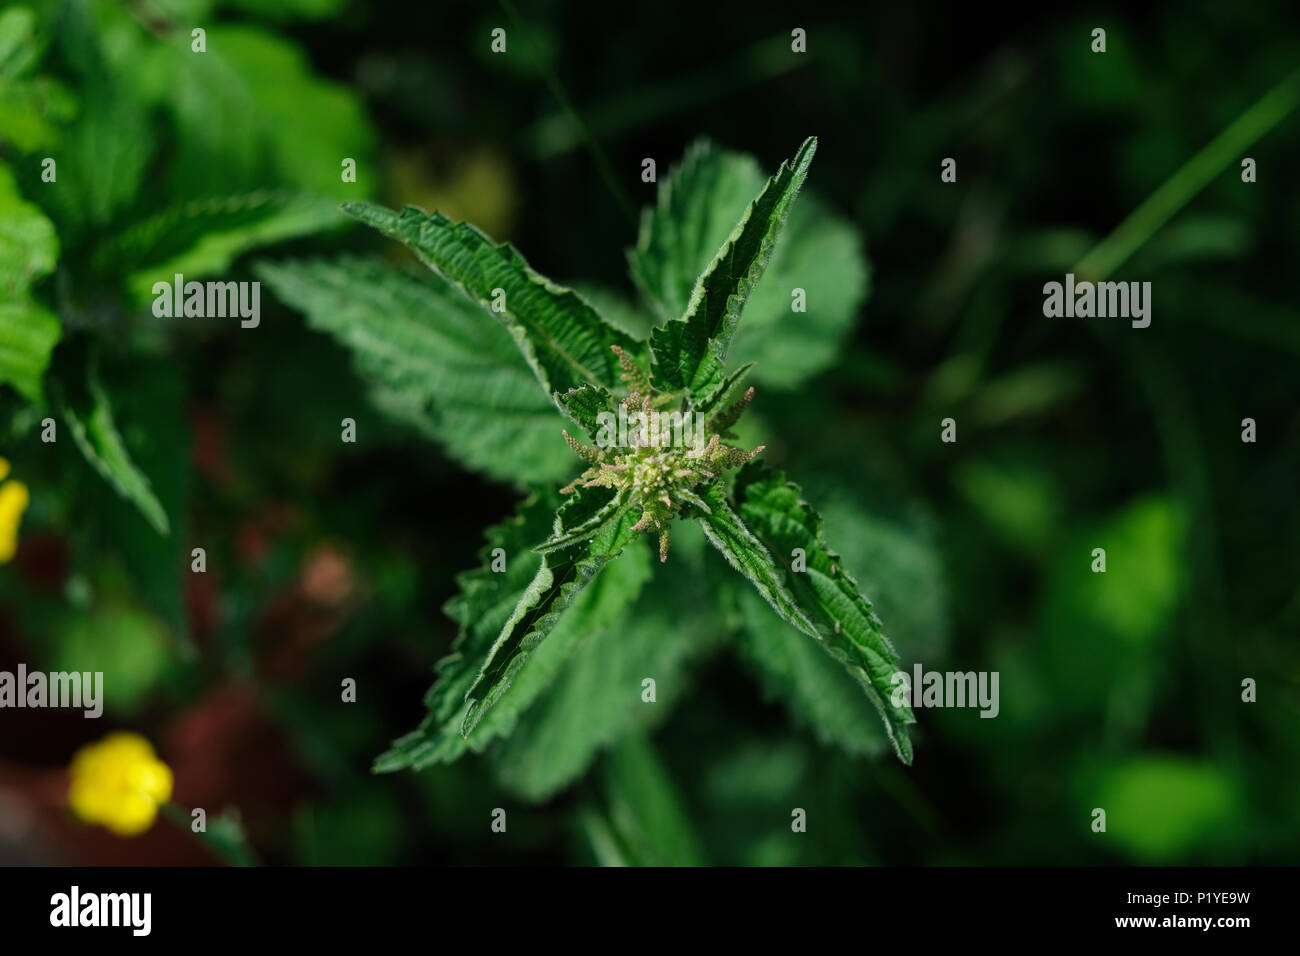 Stinging nettles with seeds with blurred background. - Stock Image